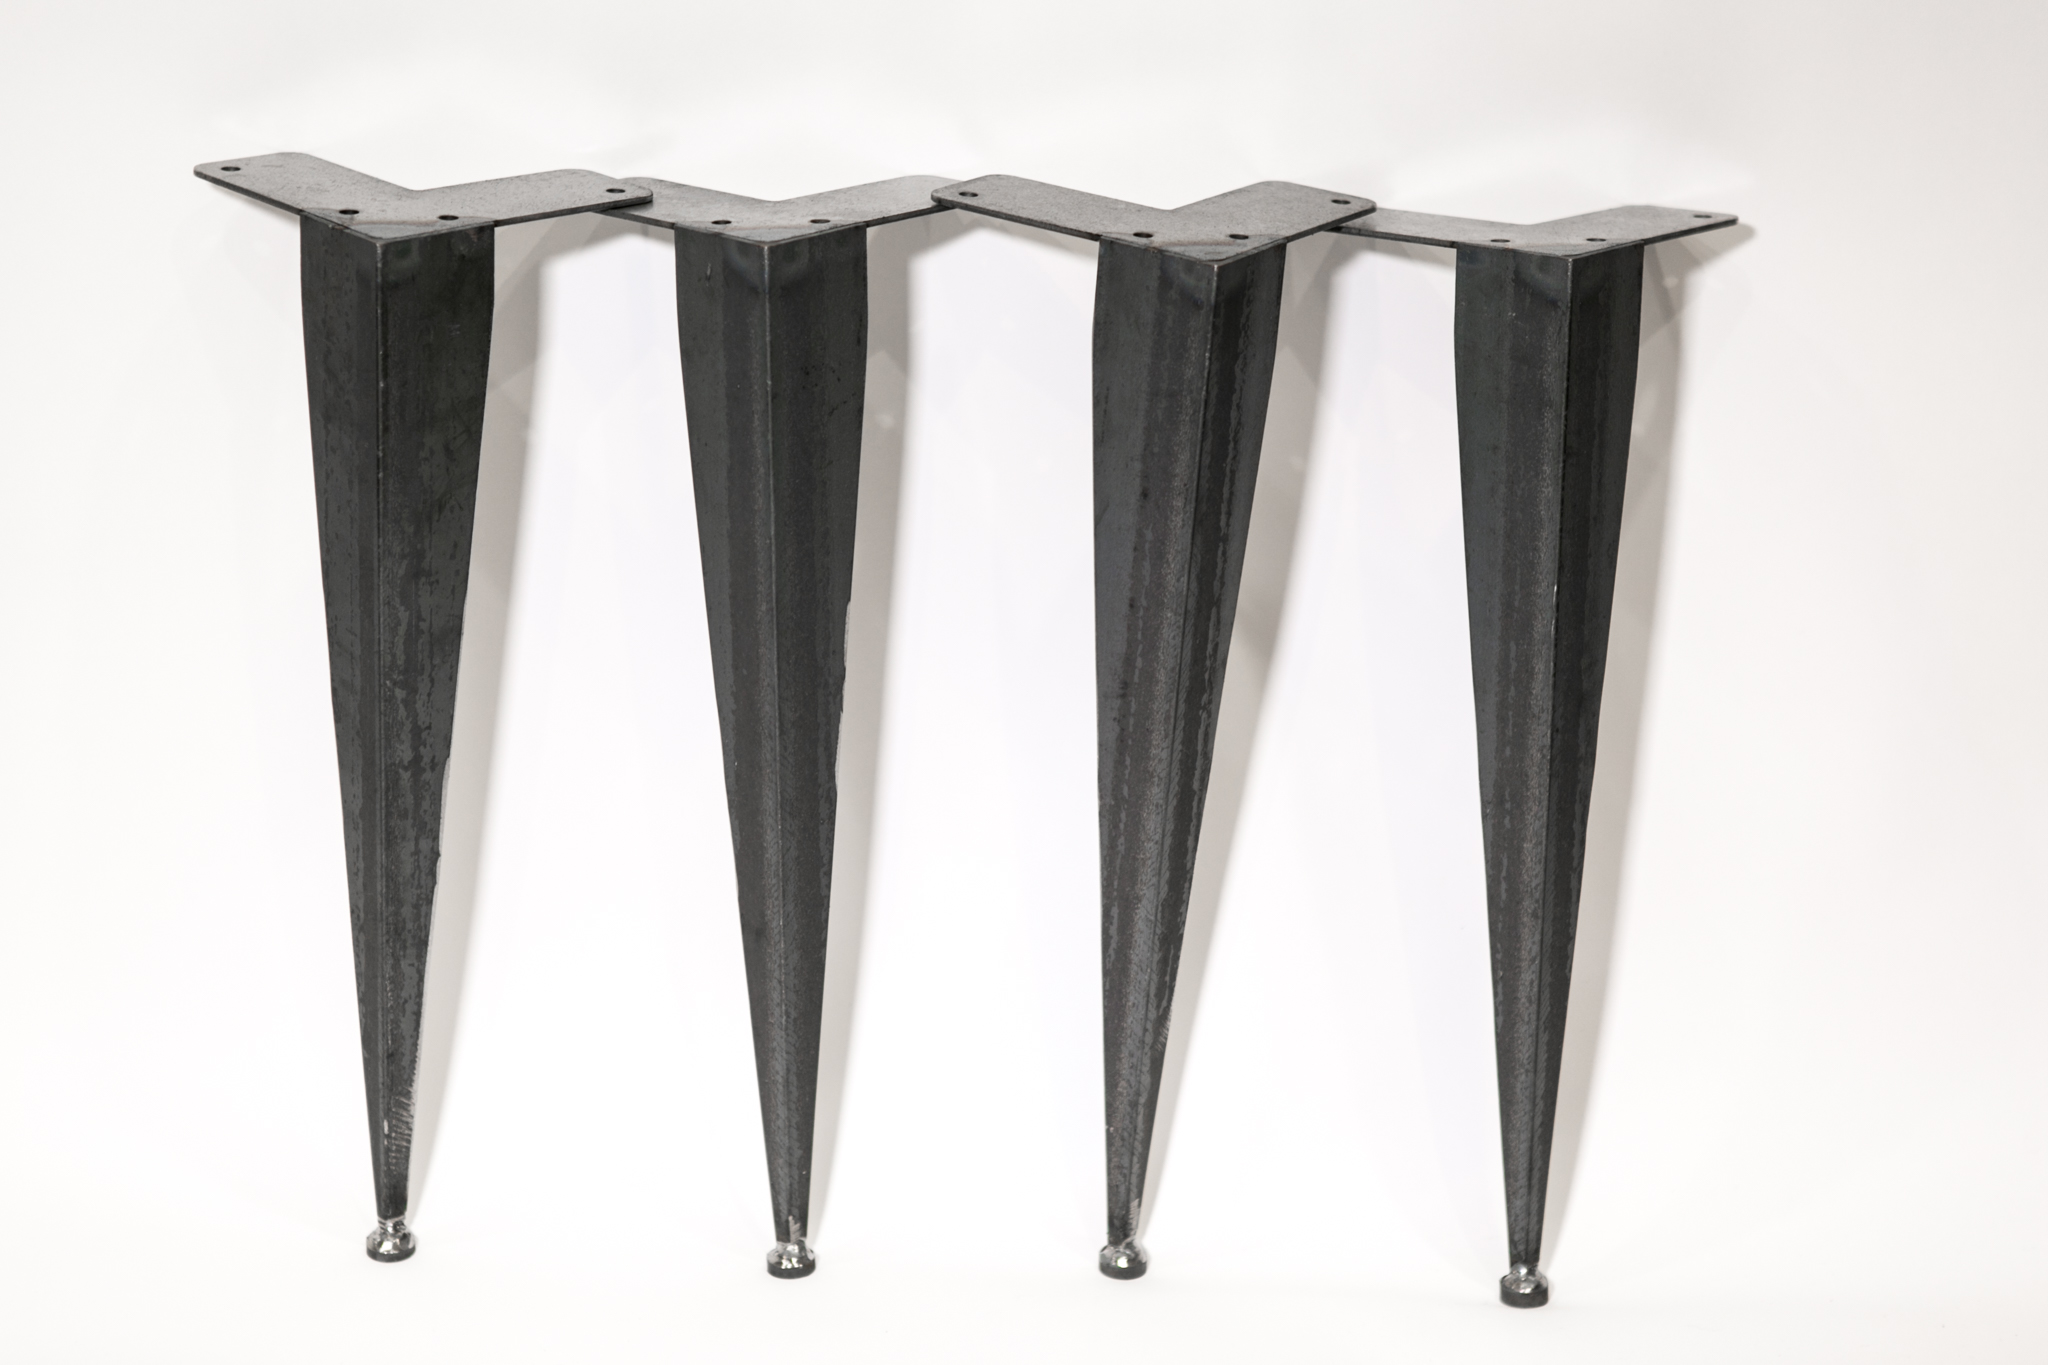 Calm Tapered Angle Iron Table Legs Tapered Angle Iron Table Legs Iron Table Legs Vancouver Iron Table Legs Canada houzz-02 Iron Table Legs